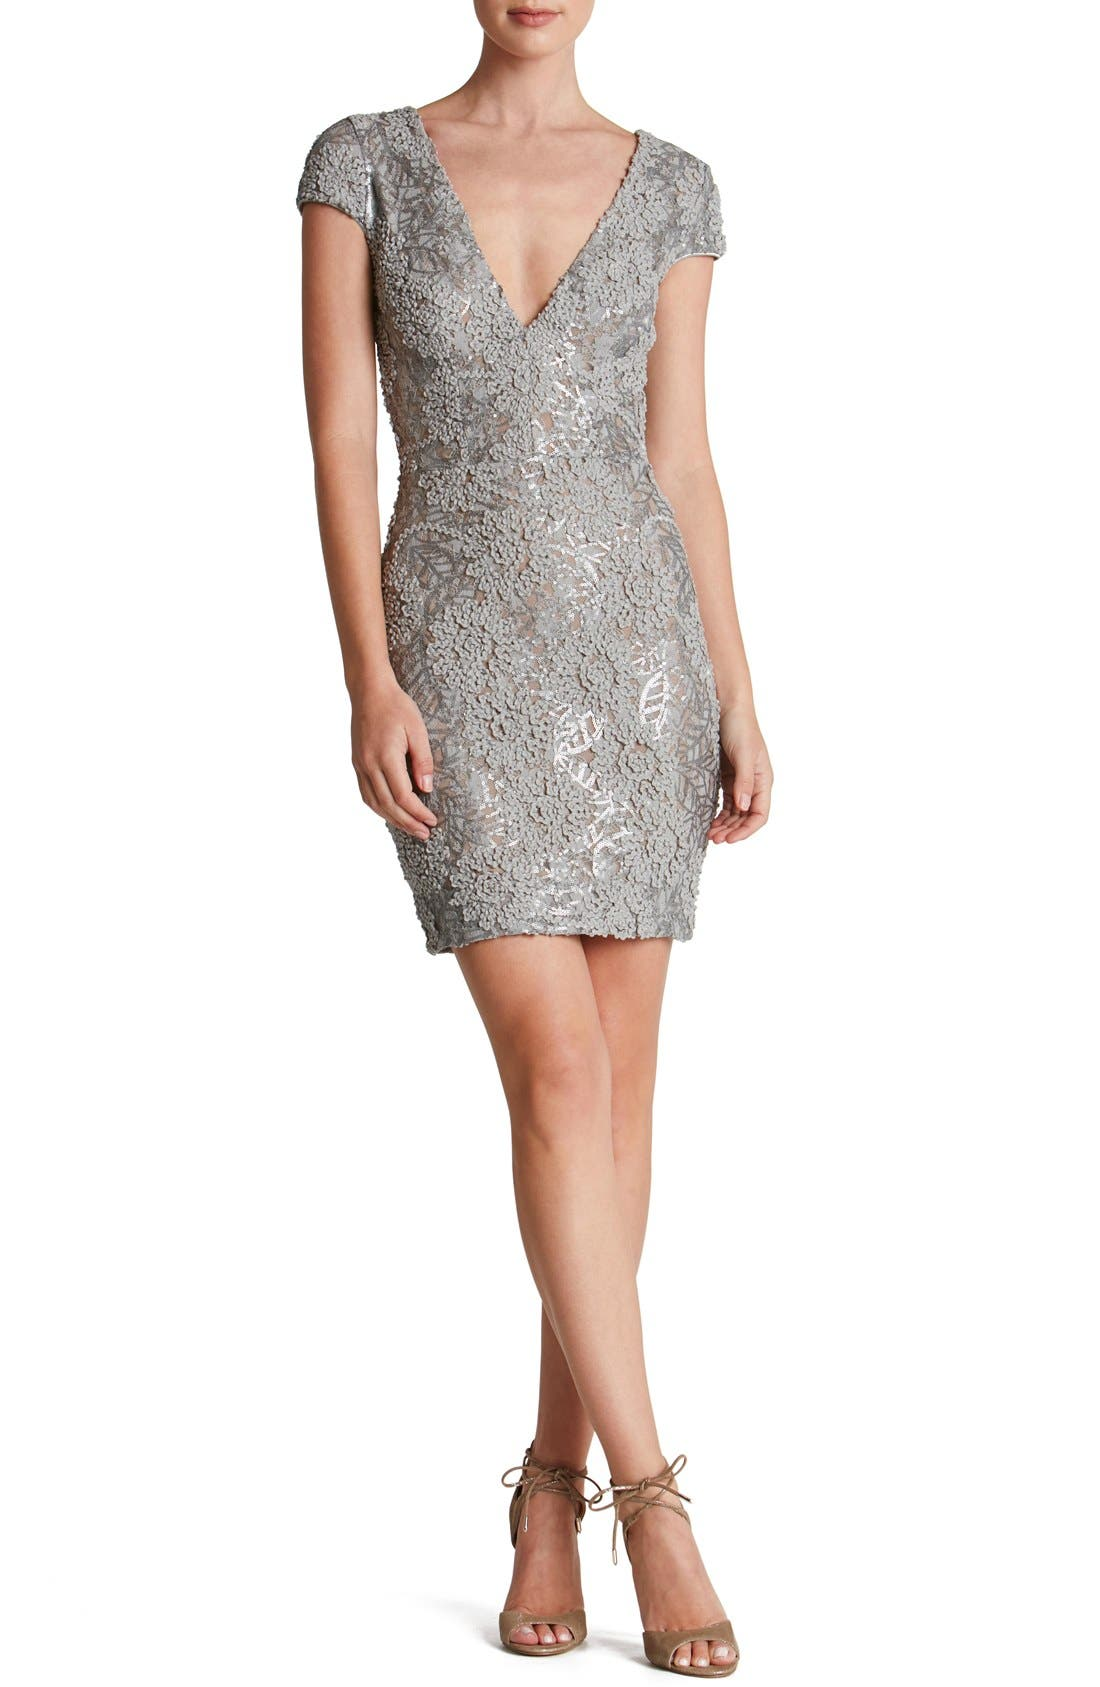 Alternate Image 1 Selected - Dress the Population 'Zoe' Embellished Mesh Body-Con Dress